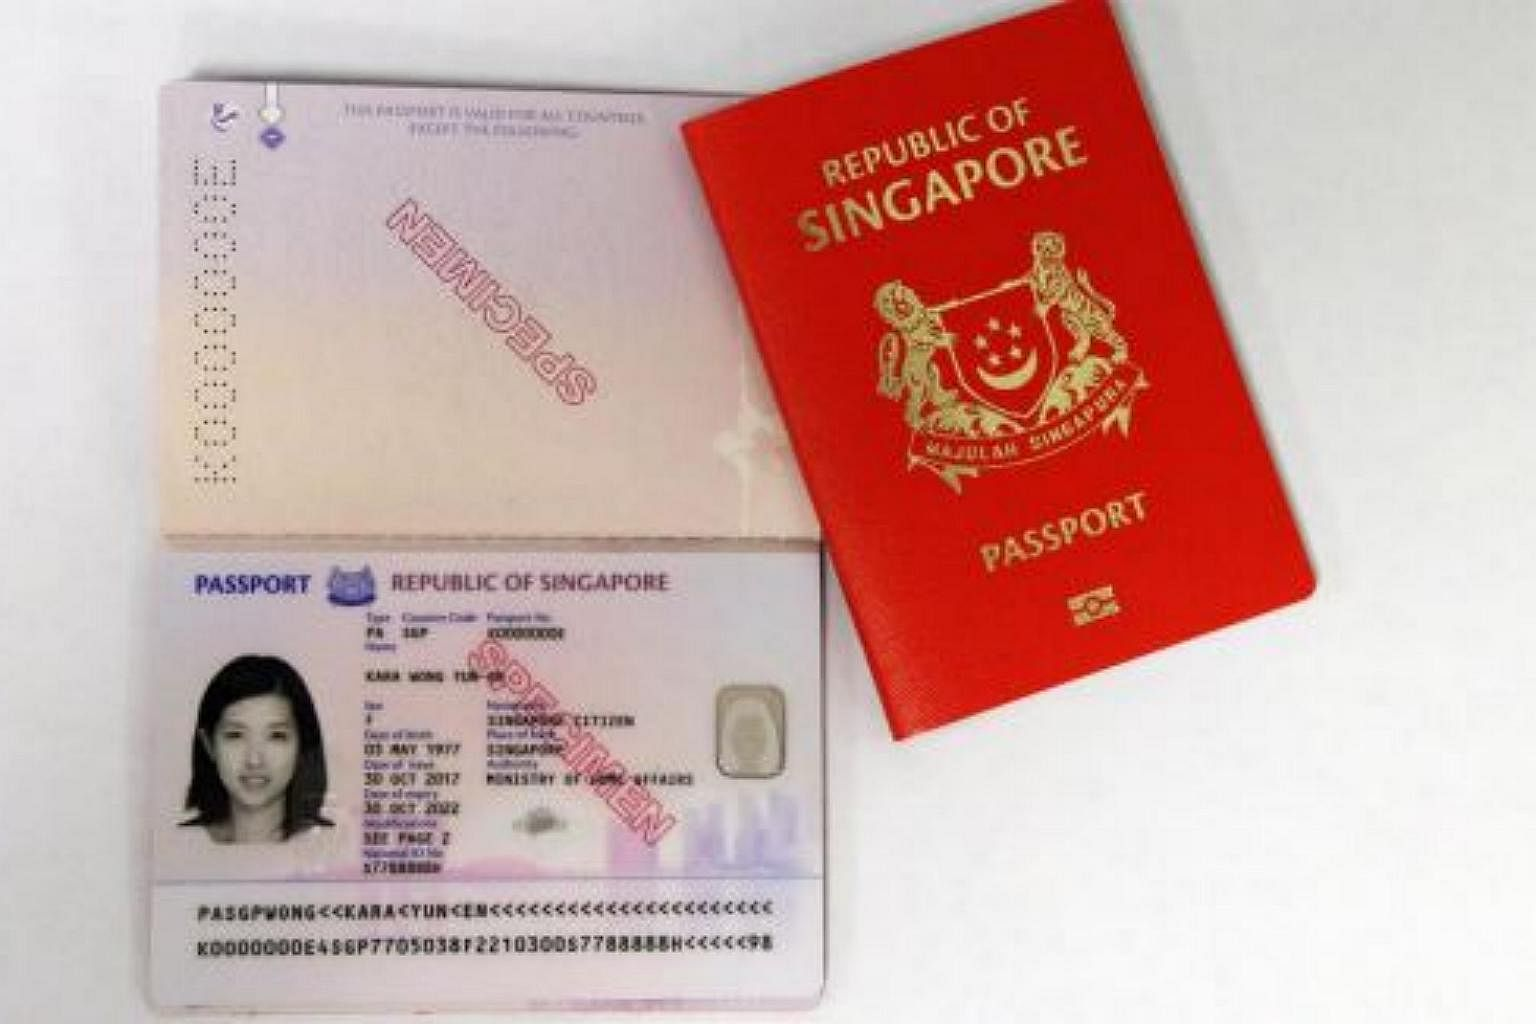 New Design For Singapore Passport With Additional Security Features Ica Singapore News Top Stories The Straits Times